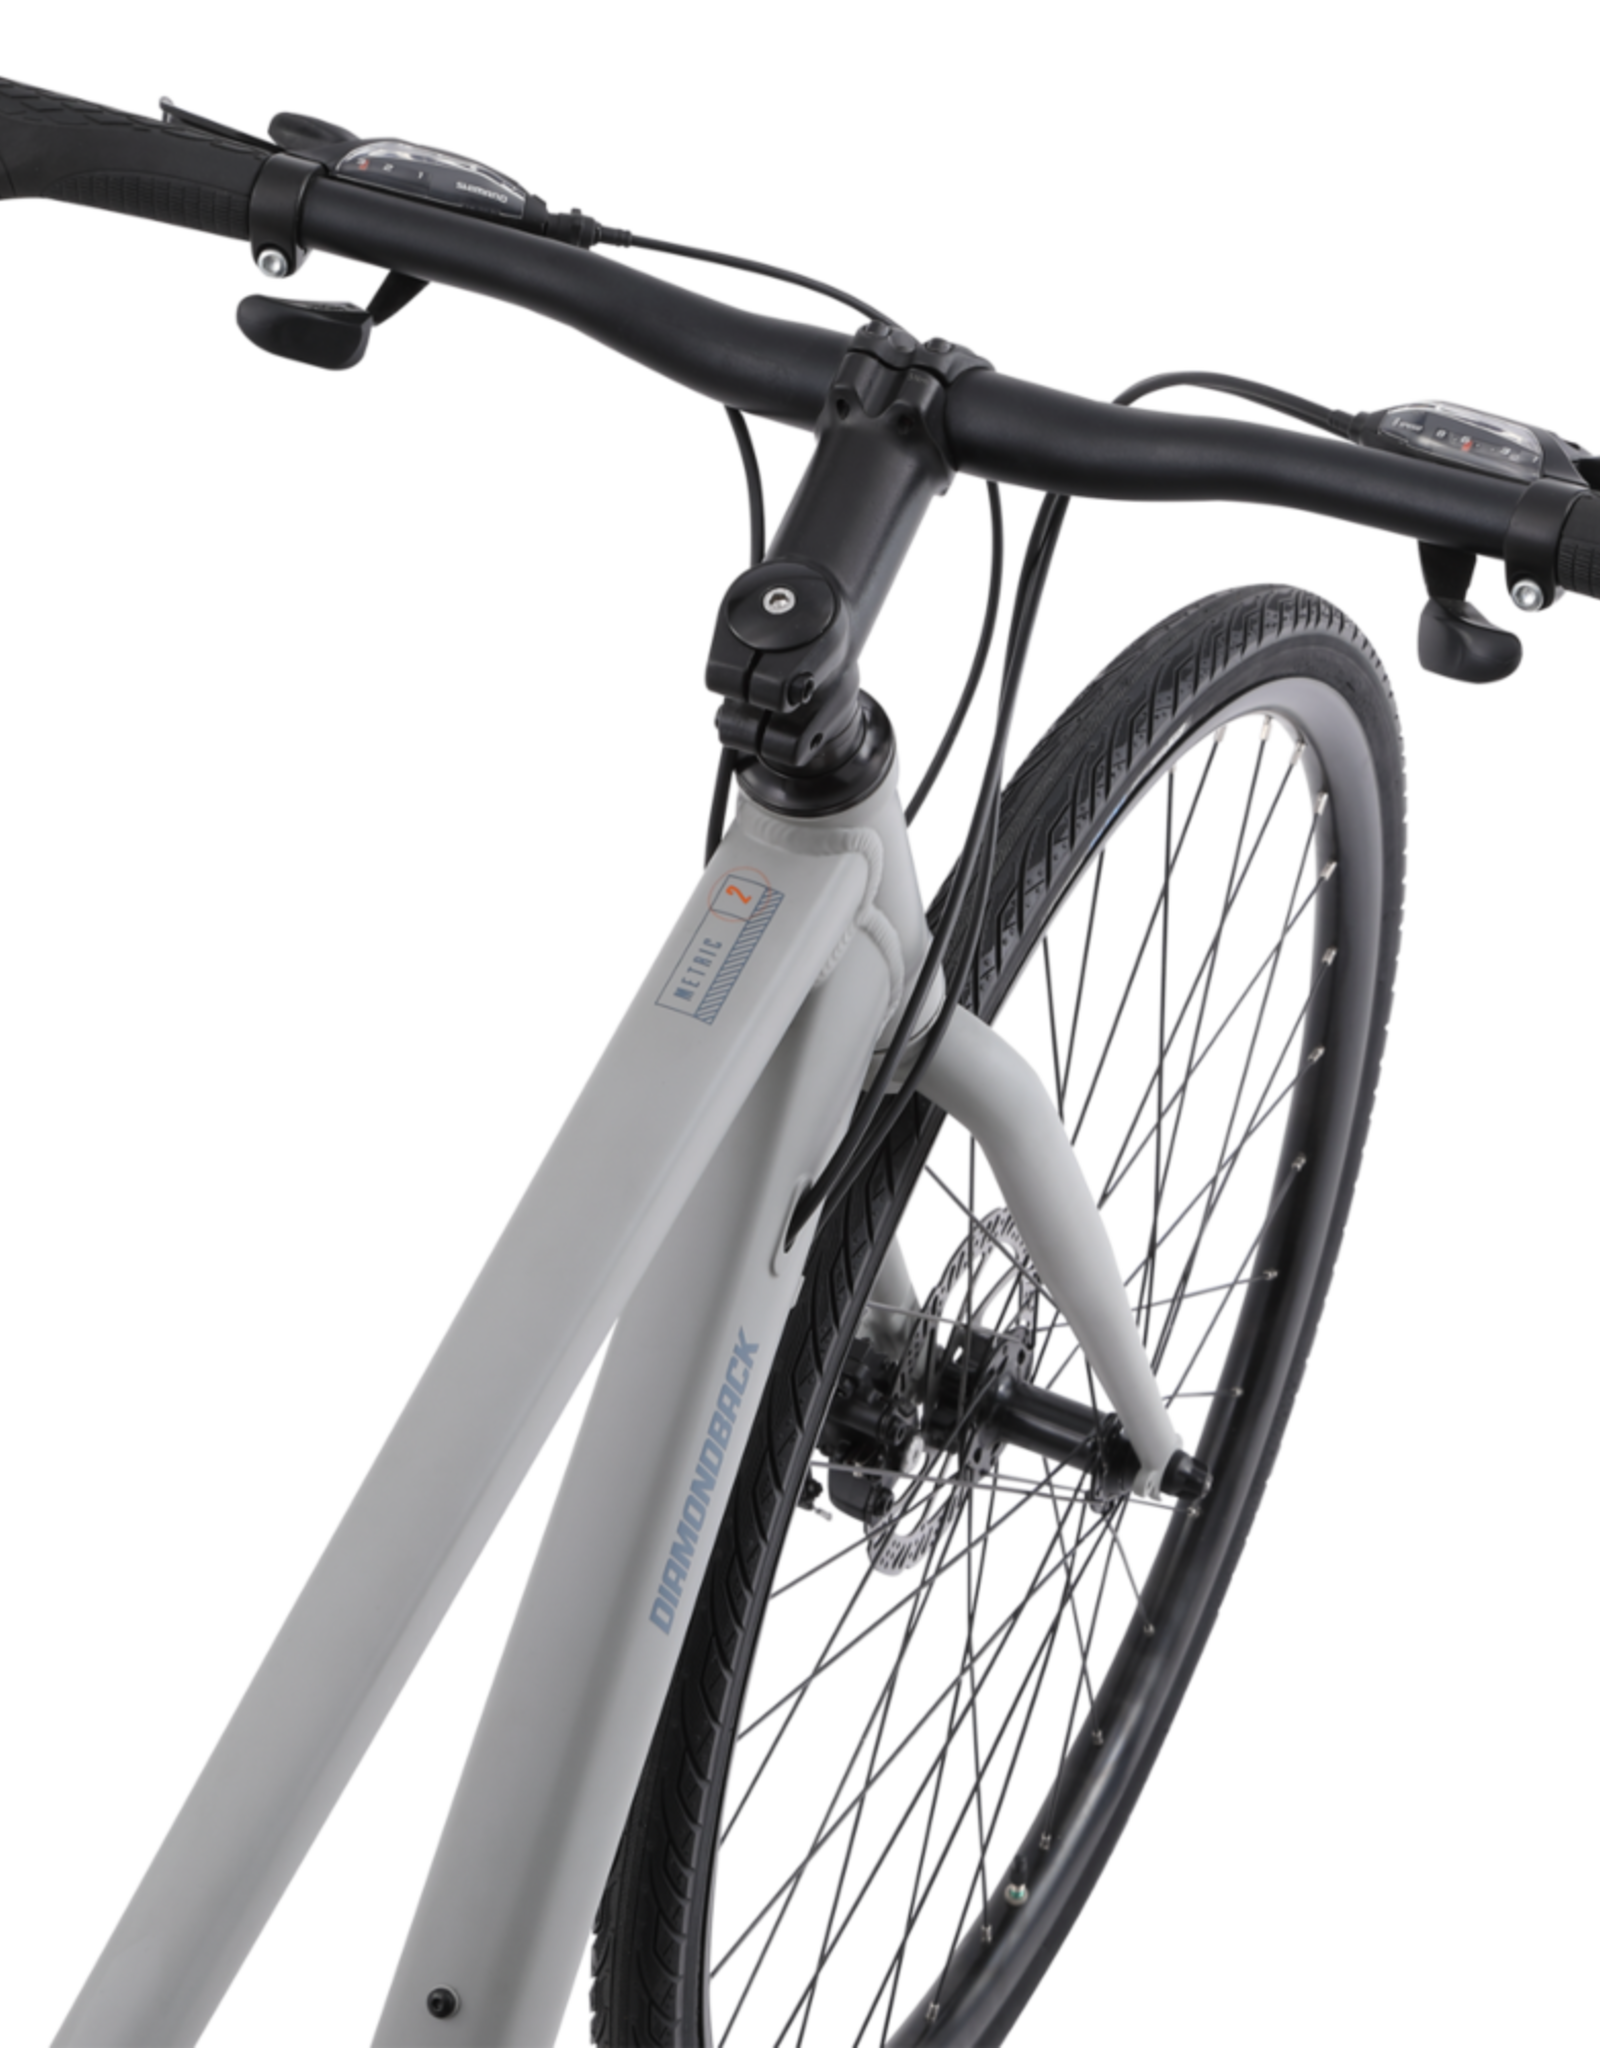 2021 Metric 2 Commuter Bicycle, Mechanical Brakes, SMALL